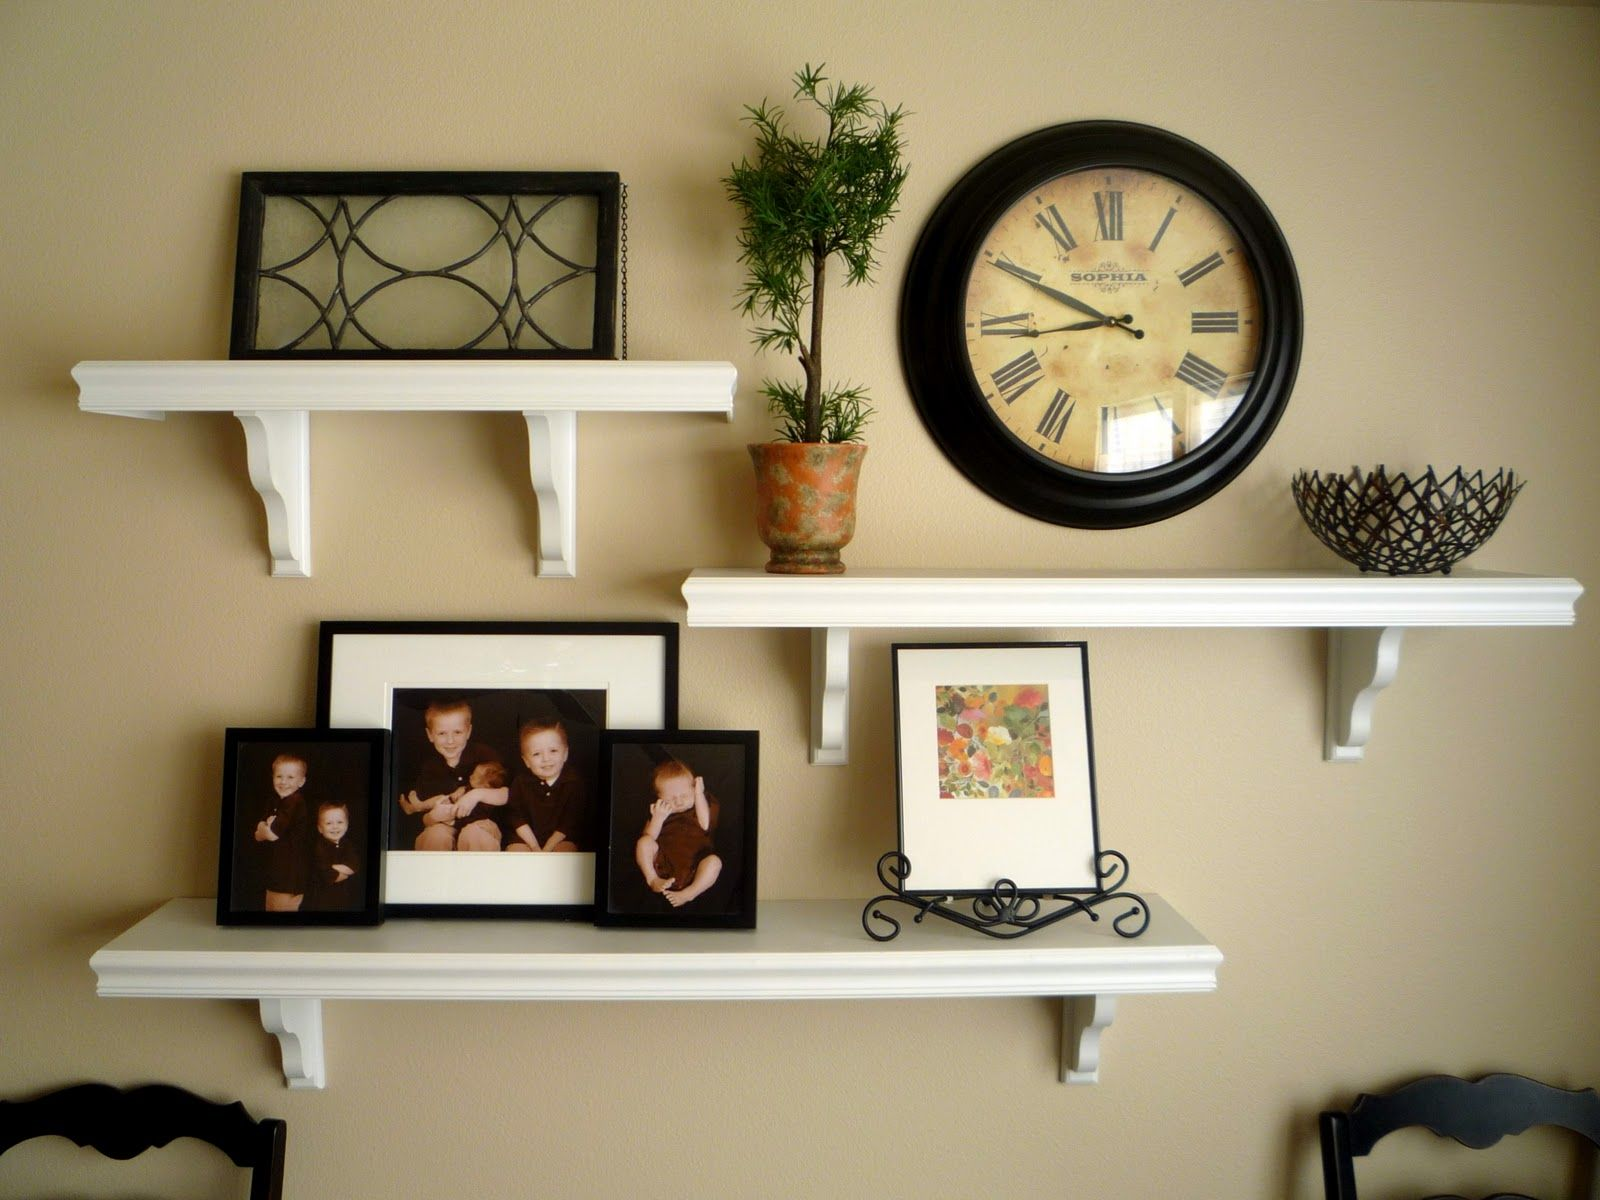 Wall Shelves Ideas Living Room Picture And Shelves On Wall Together  It All Started After Being